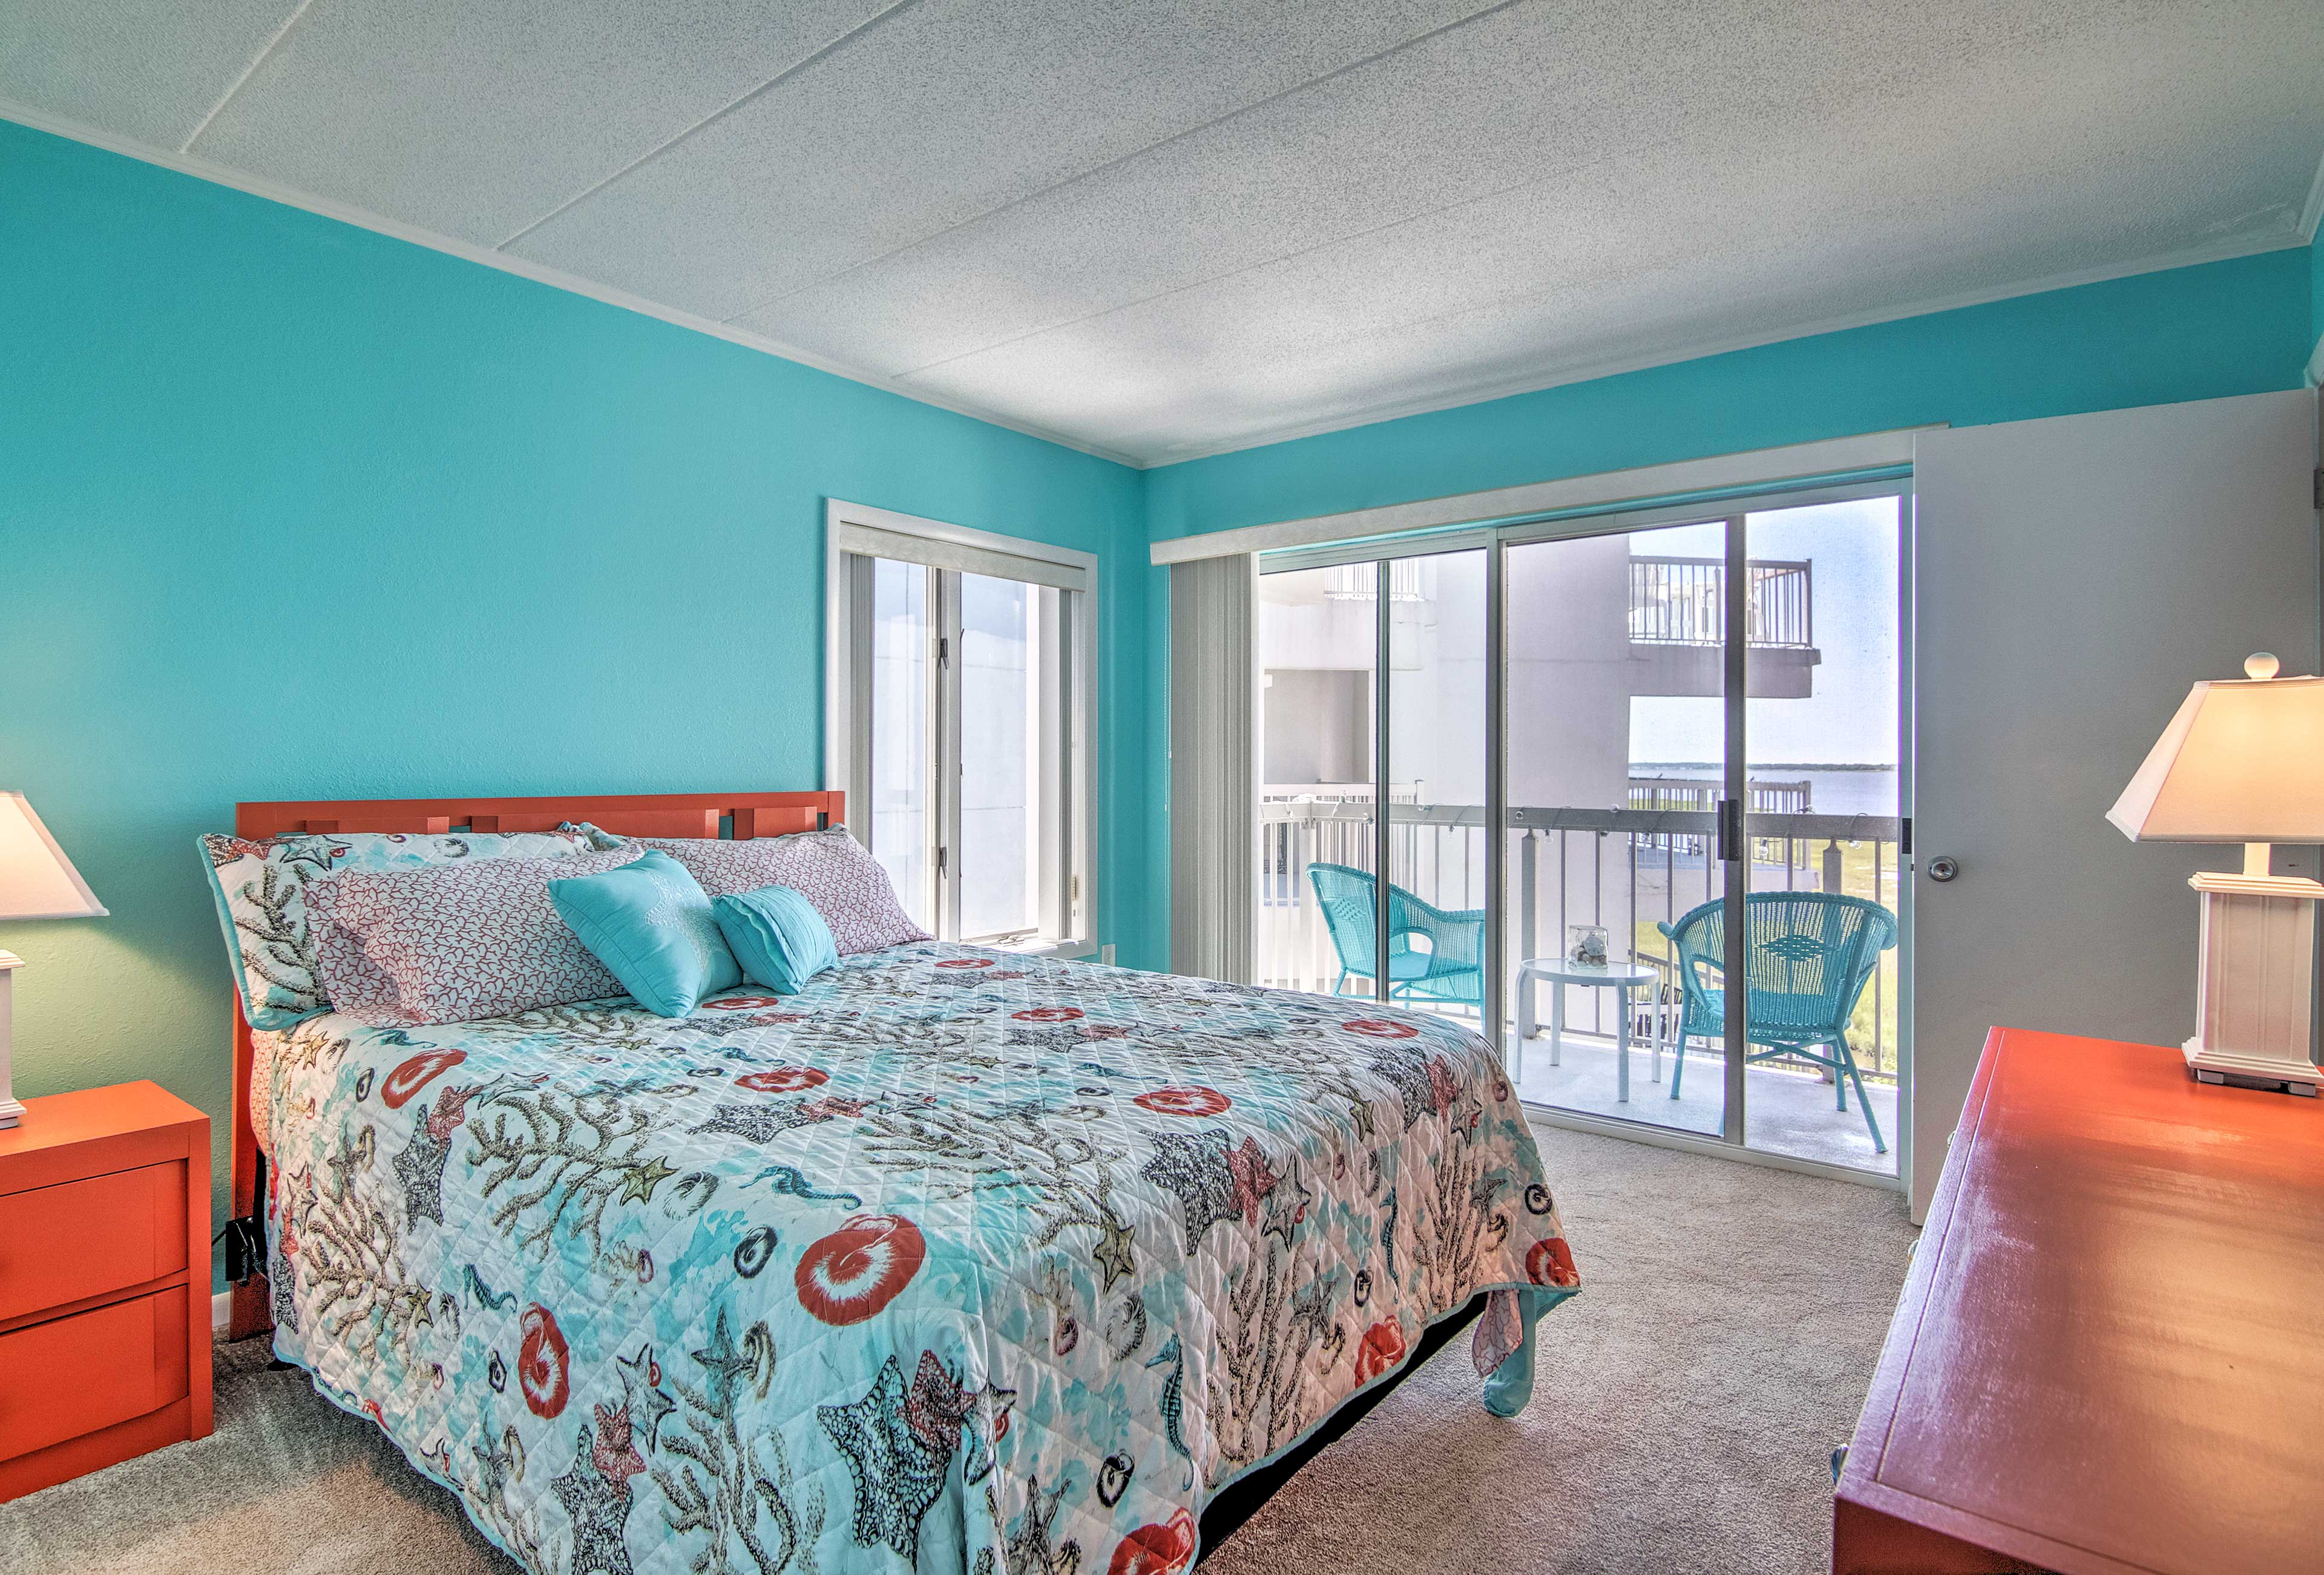 The master bedroom features a full bed, flat-screen TV, and private patio access